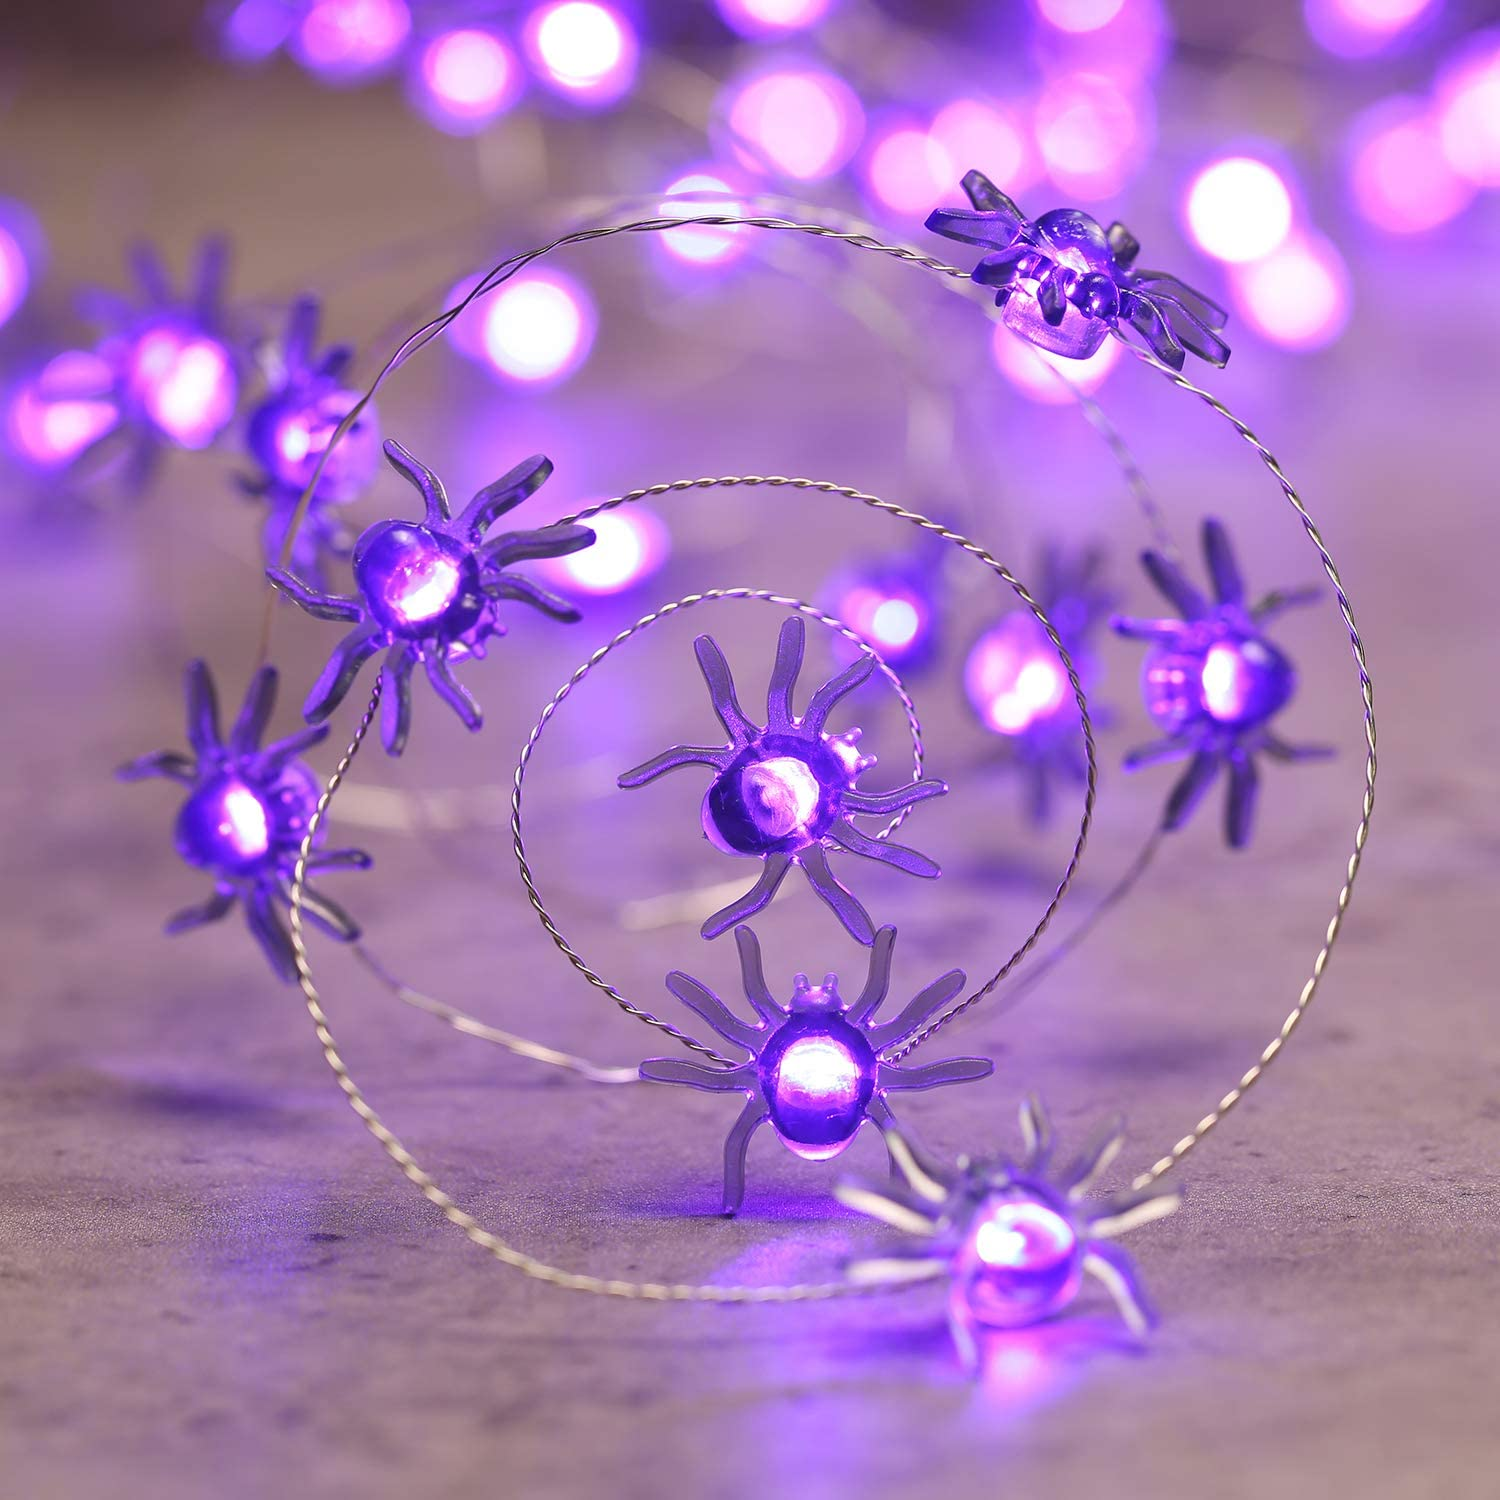 Purple Lyhope Bat Halloween Lights 40 LED 13.5ft Battery Powered Halloween String Lights Flexible Copper Wire Decorative Lights for Halloween Party Decorations